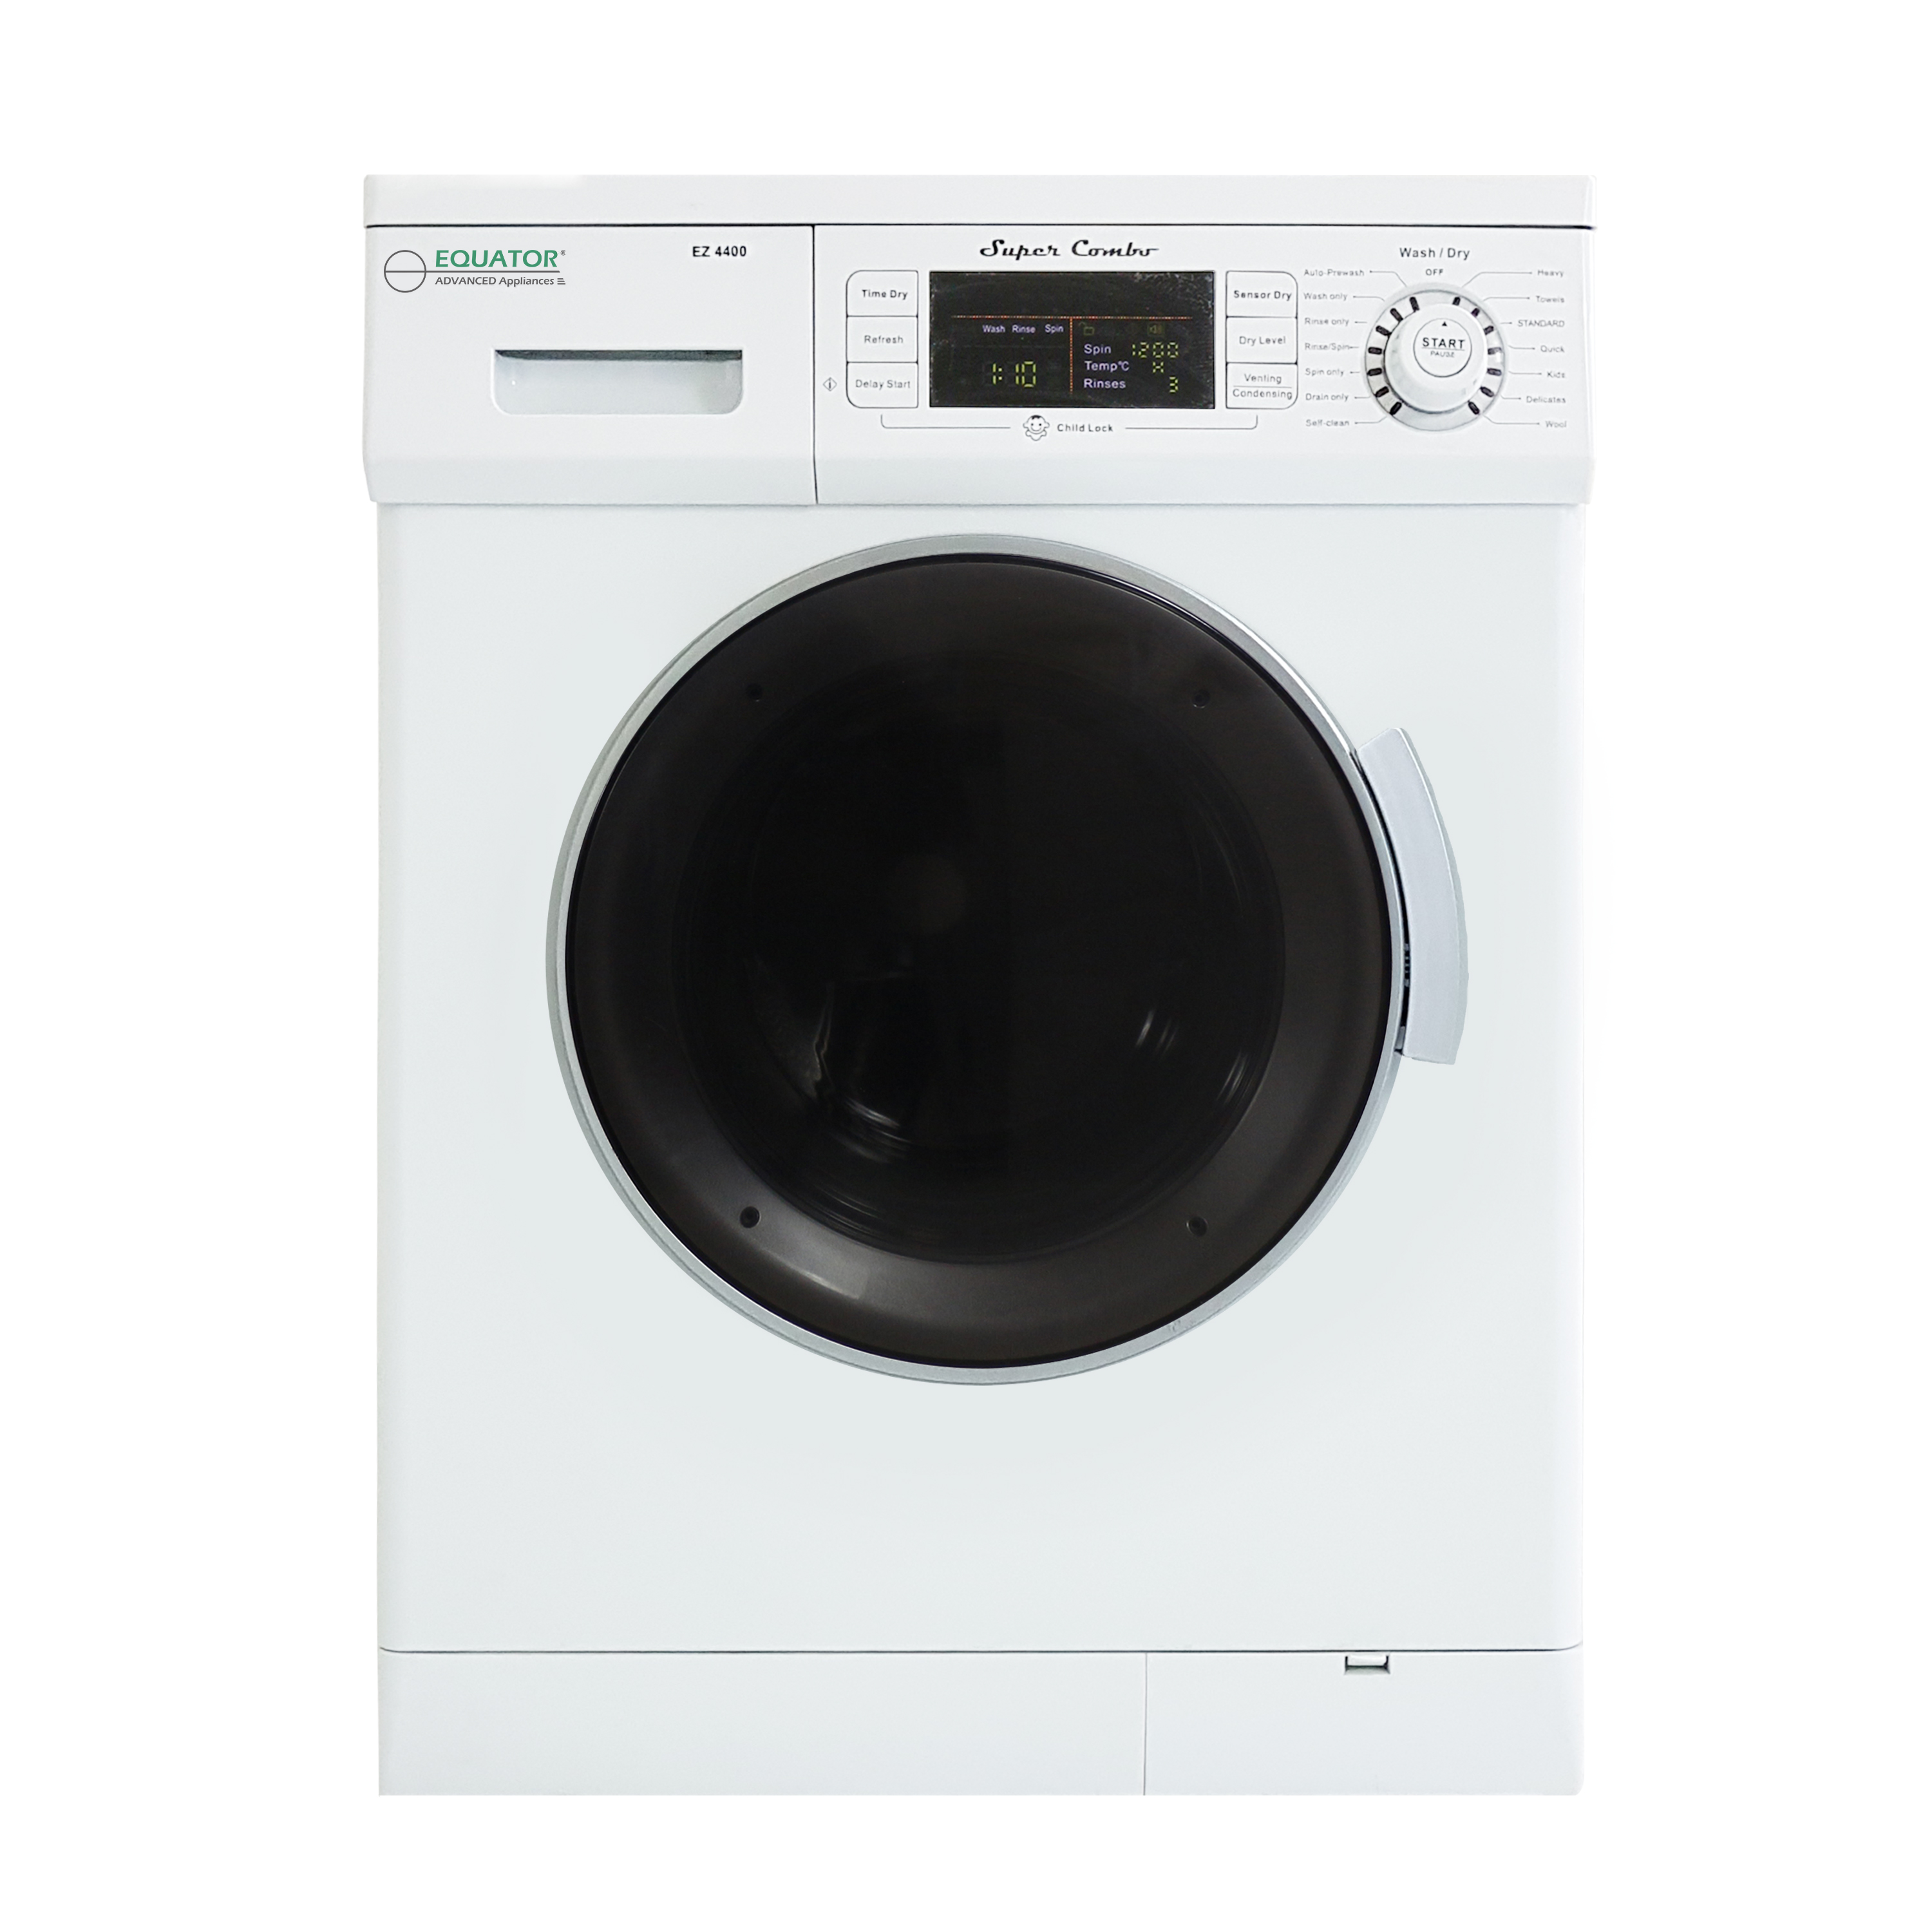 Equator 1.57 cu.ft. Compact Convertible Super Combo Washer-Condensing Drying, White